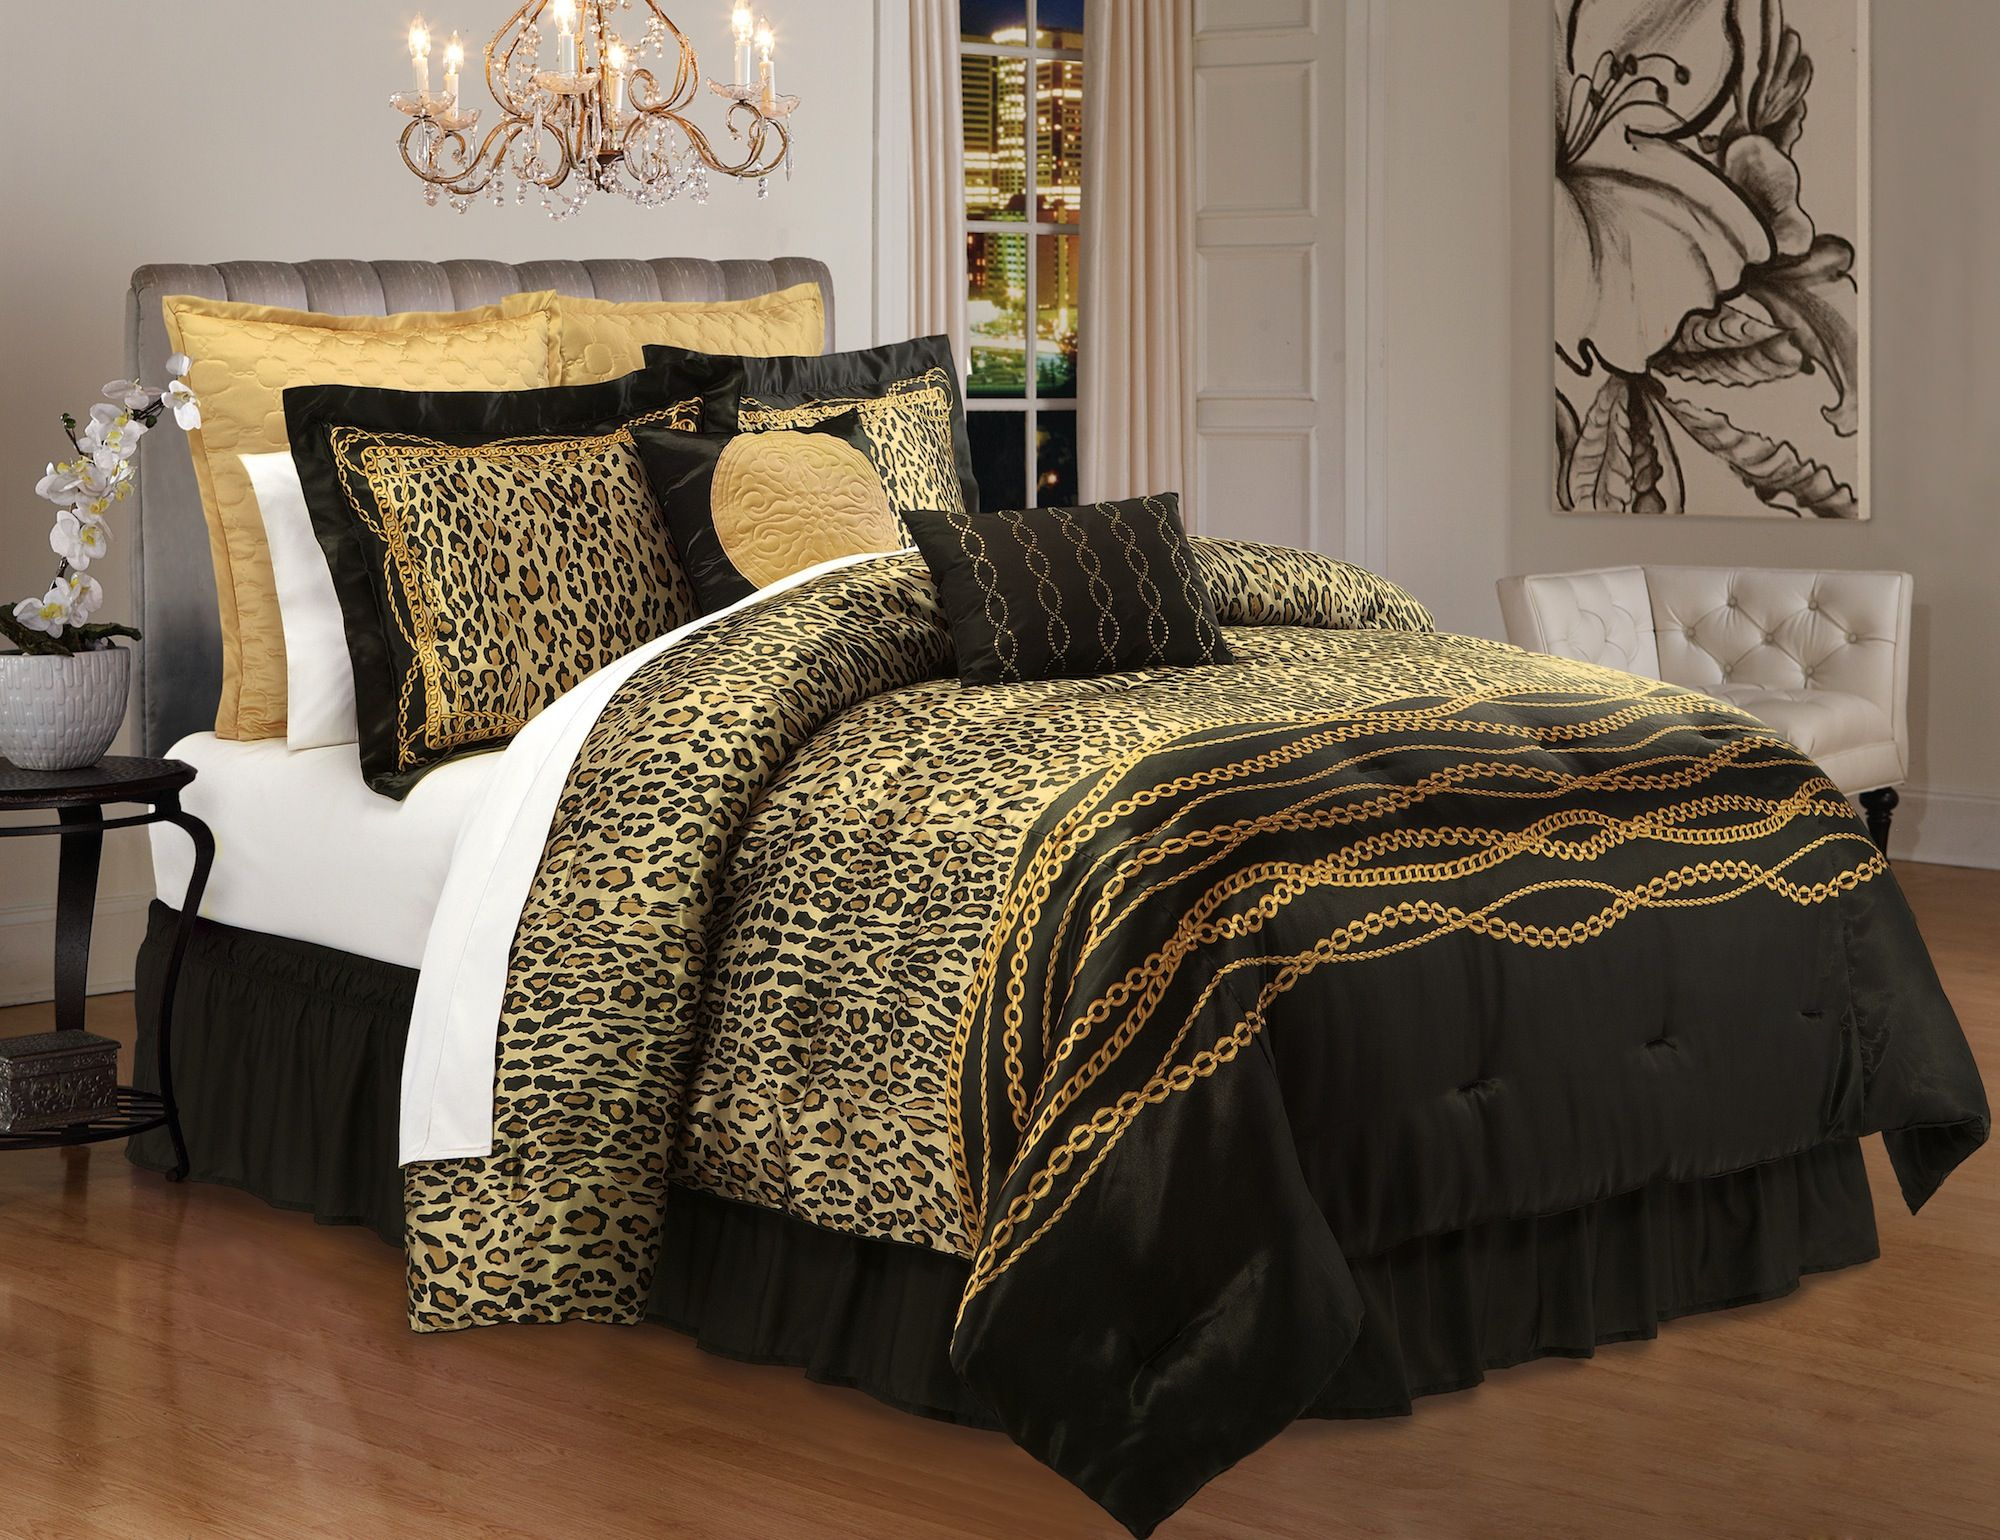 Kardashian Kollection Safari Luxe Bedding Bedroom Comforter Sets Bed Comforter Sets King